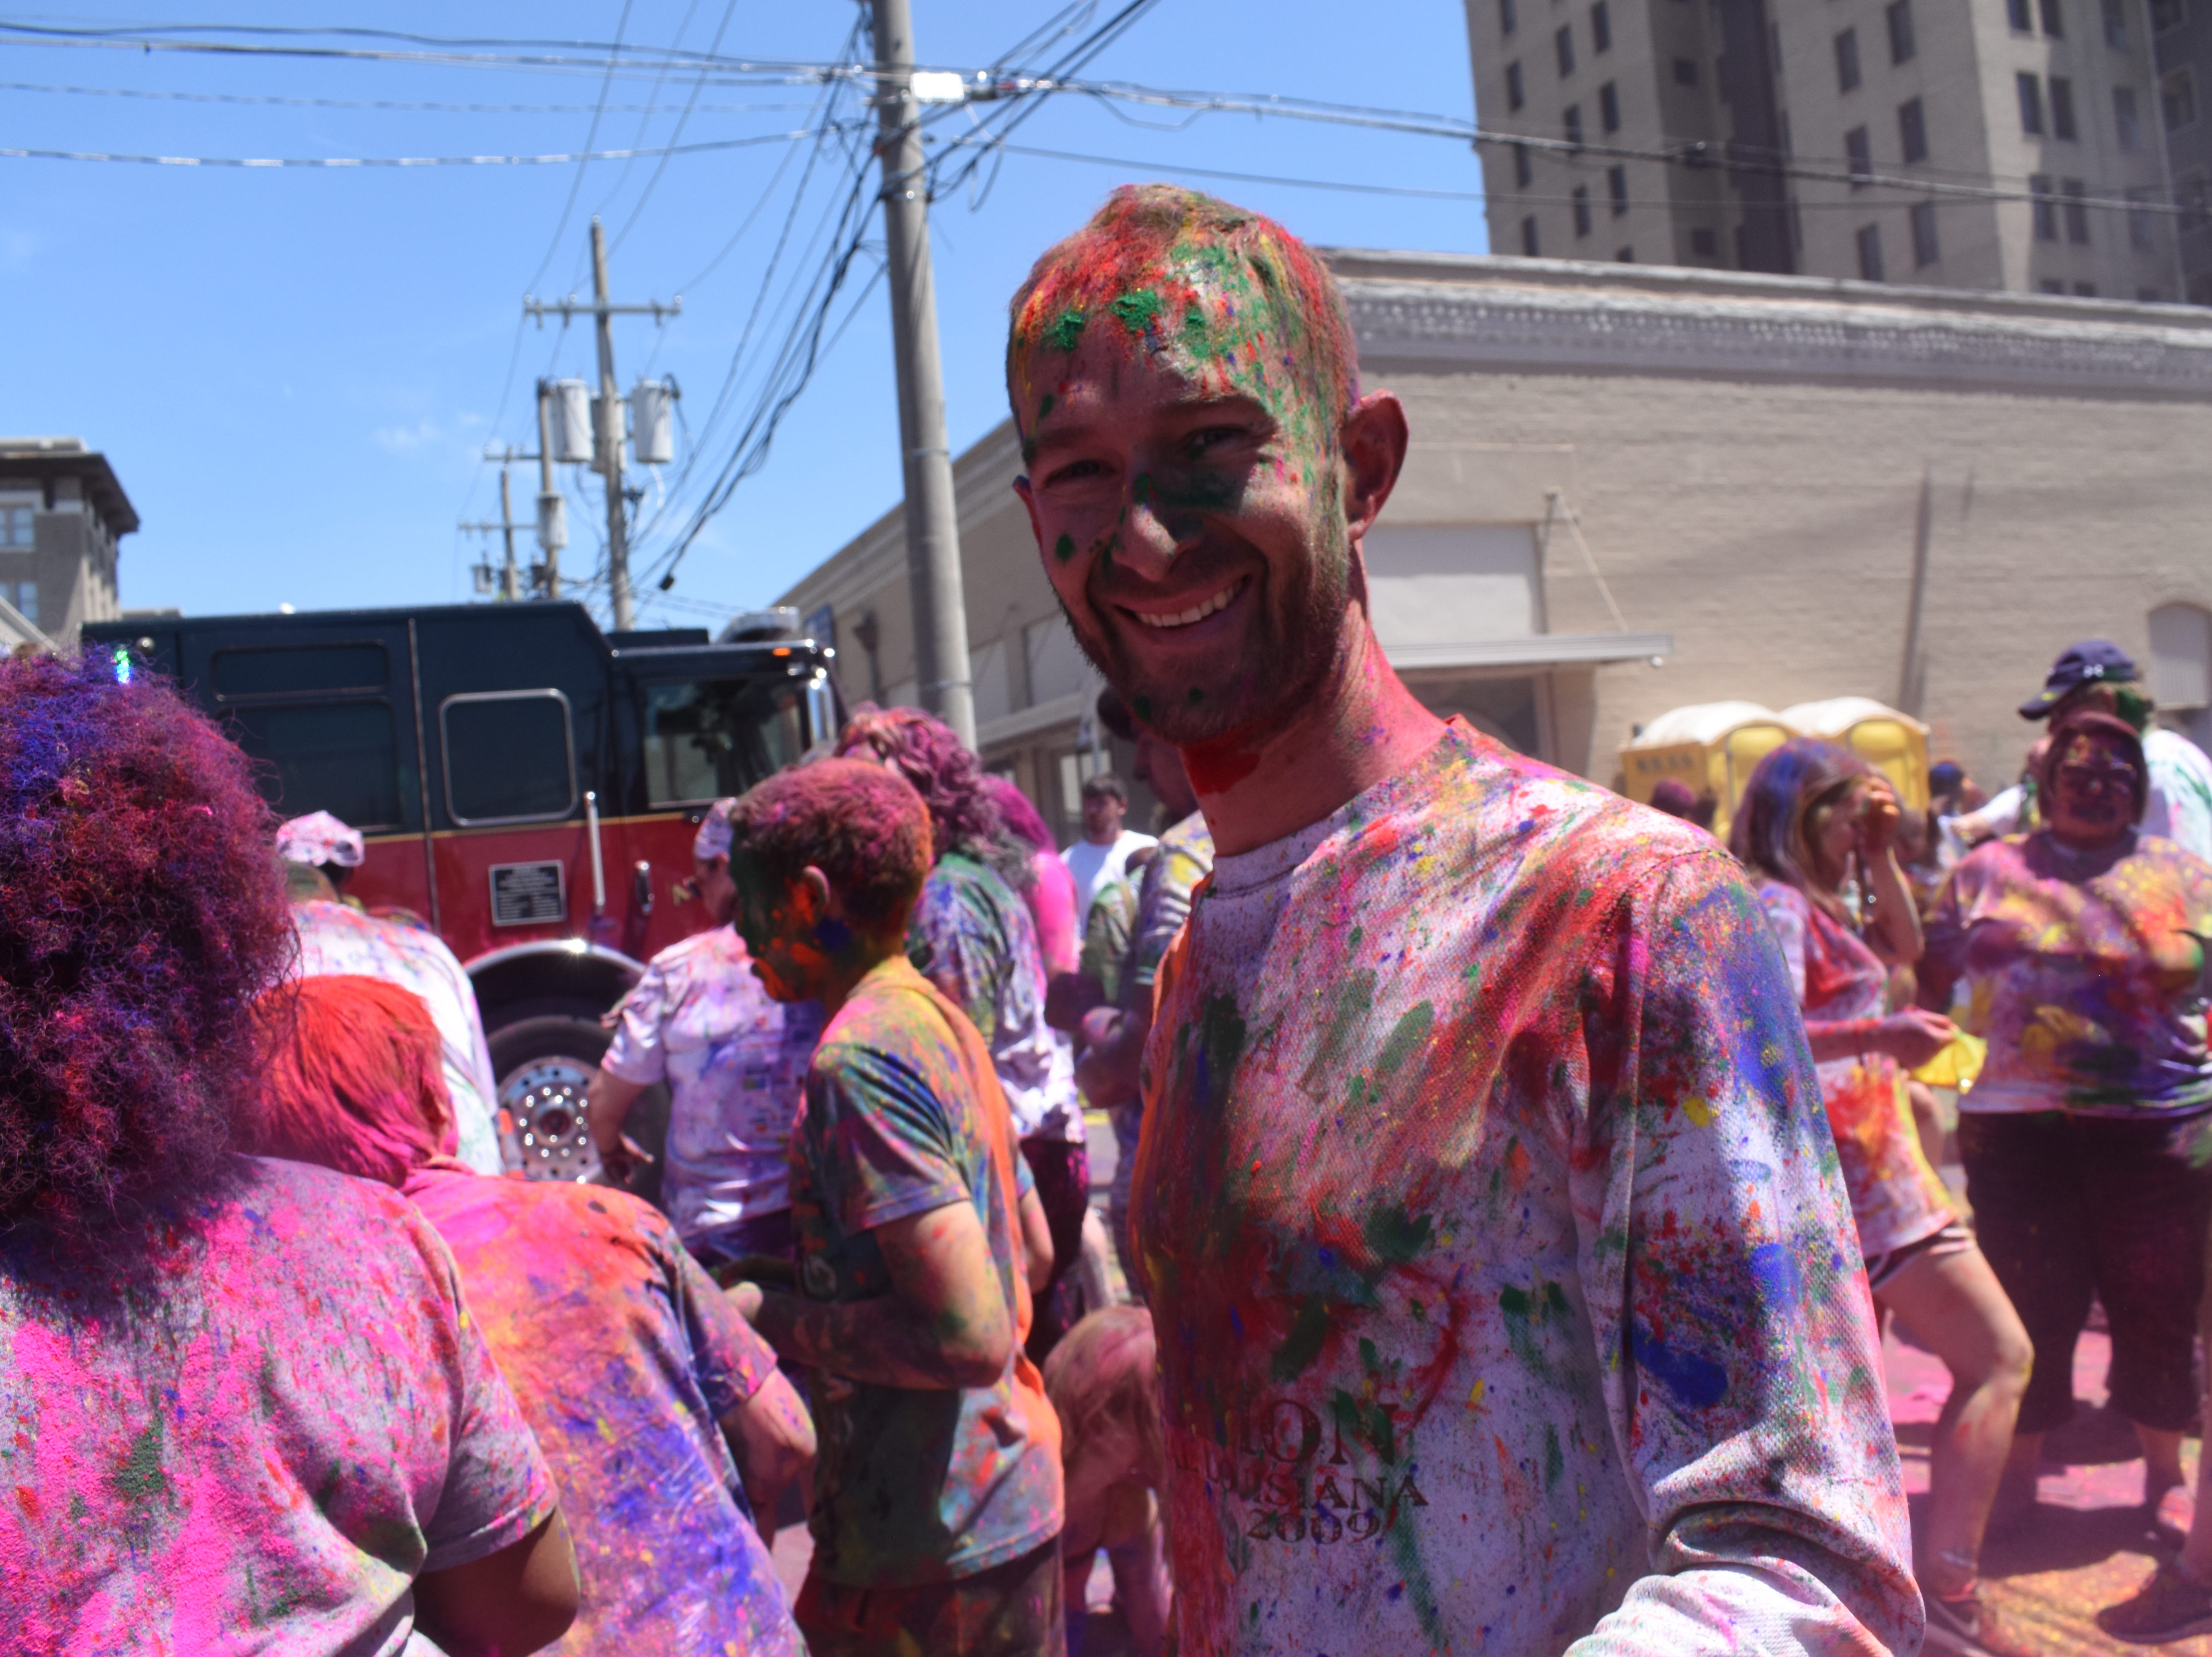 In association with the Children's Advocacy Network, the Cenla India Association hosted the eighth annual Holi-Fest 2019 - the Festival of Colors - in downtown Alexandria near Tamp & Grind Coffee House on 4th Street on Saturday, April 27, 2019. A 4K run and walk were also held. Plate lunches of Indian cuisine were also sold. Proceeds benefit the Children's Advocacy Network which has the goal that every child lives in a safe, permanent home, free of abuse and neglect. The event, in which participants toss powdered color at each other, has become one of Alexandria's popularÊevents.Holi-Fest originated in Northern India about 3,000 years ago as a celebration to welcome the spring. Festival-goers toss powdered colors at each other as they celebrate.